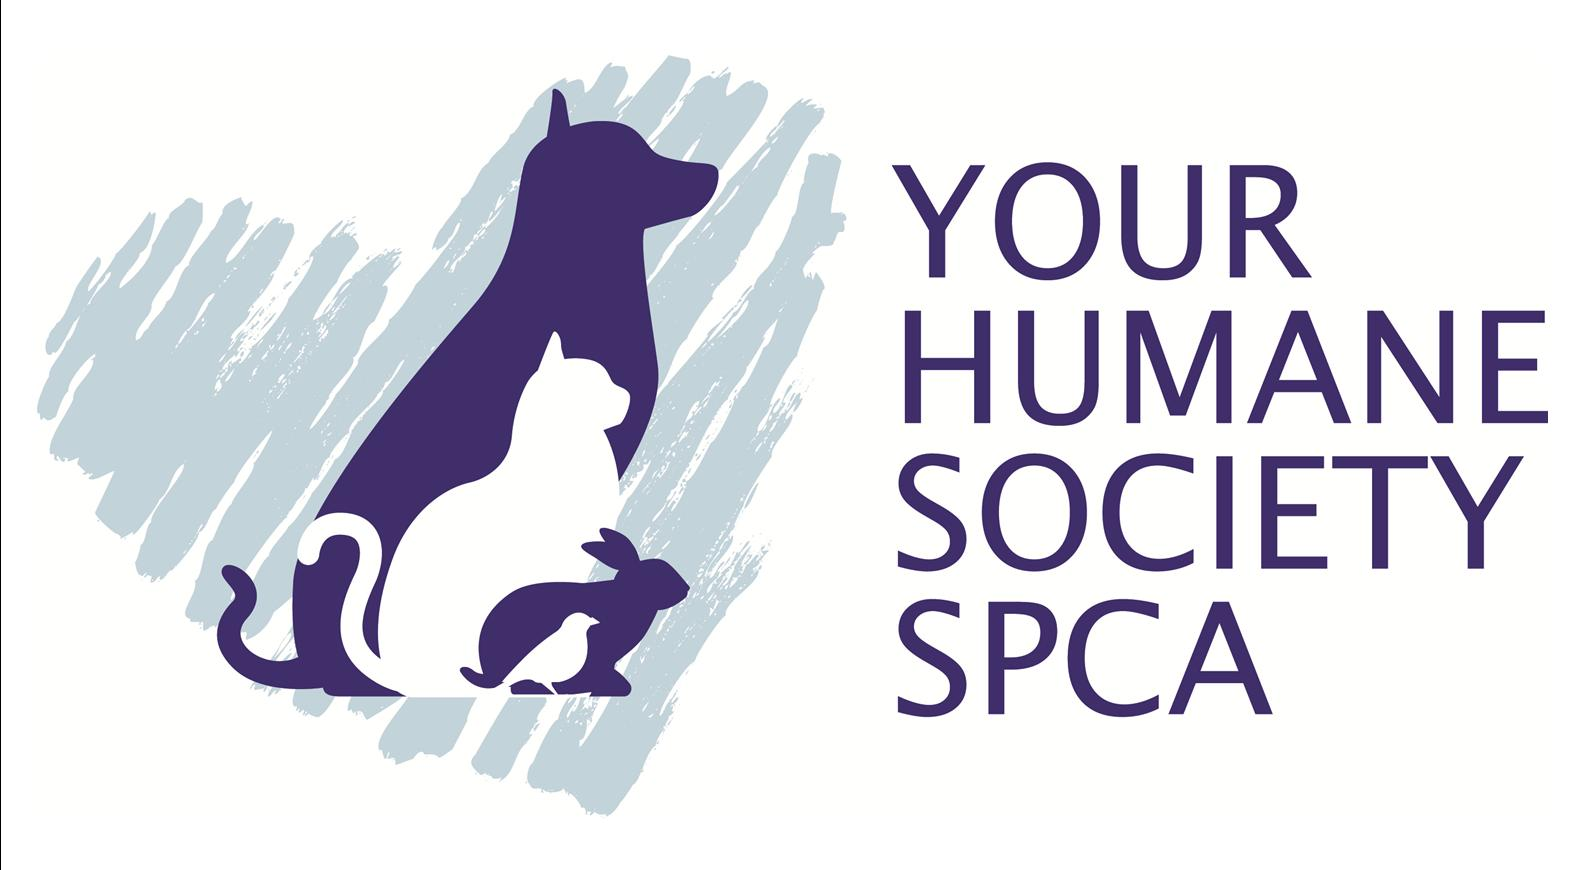 YOUR Humane Society SPCA Logo